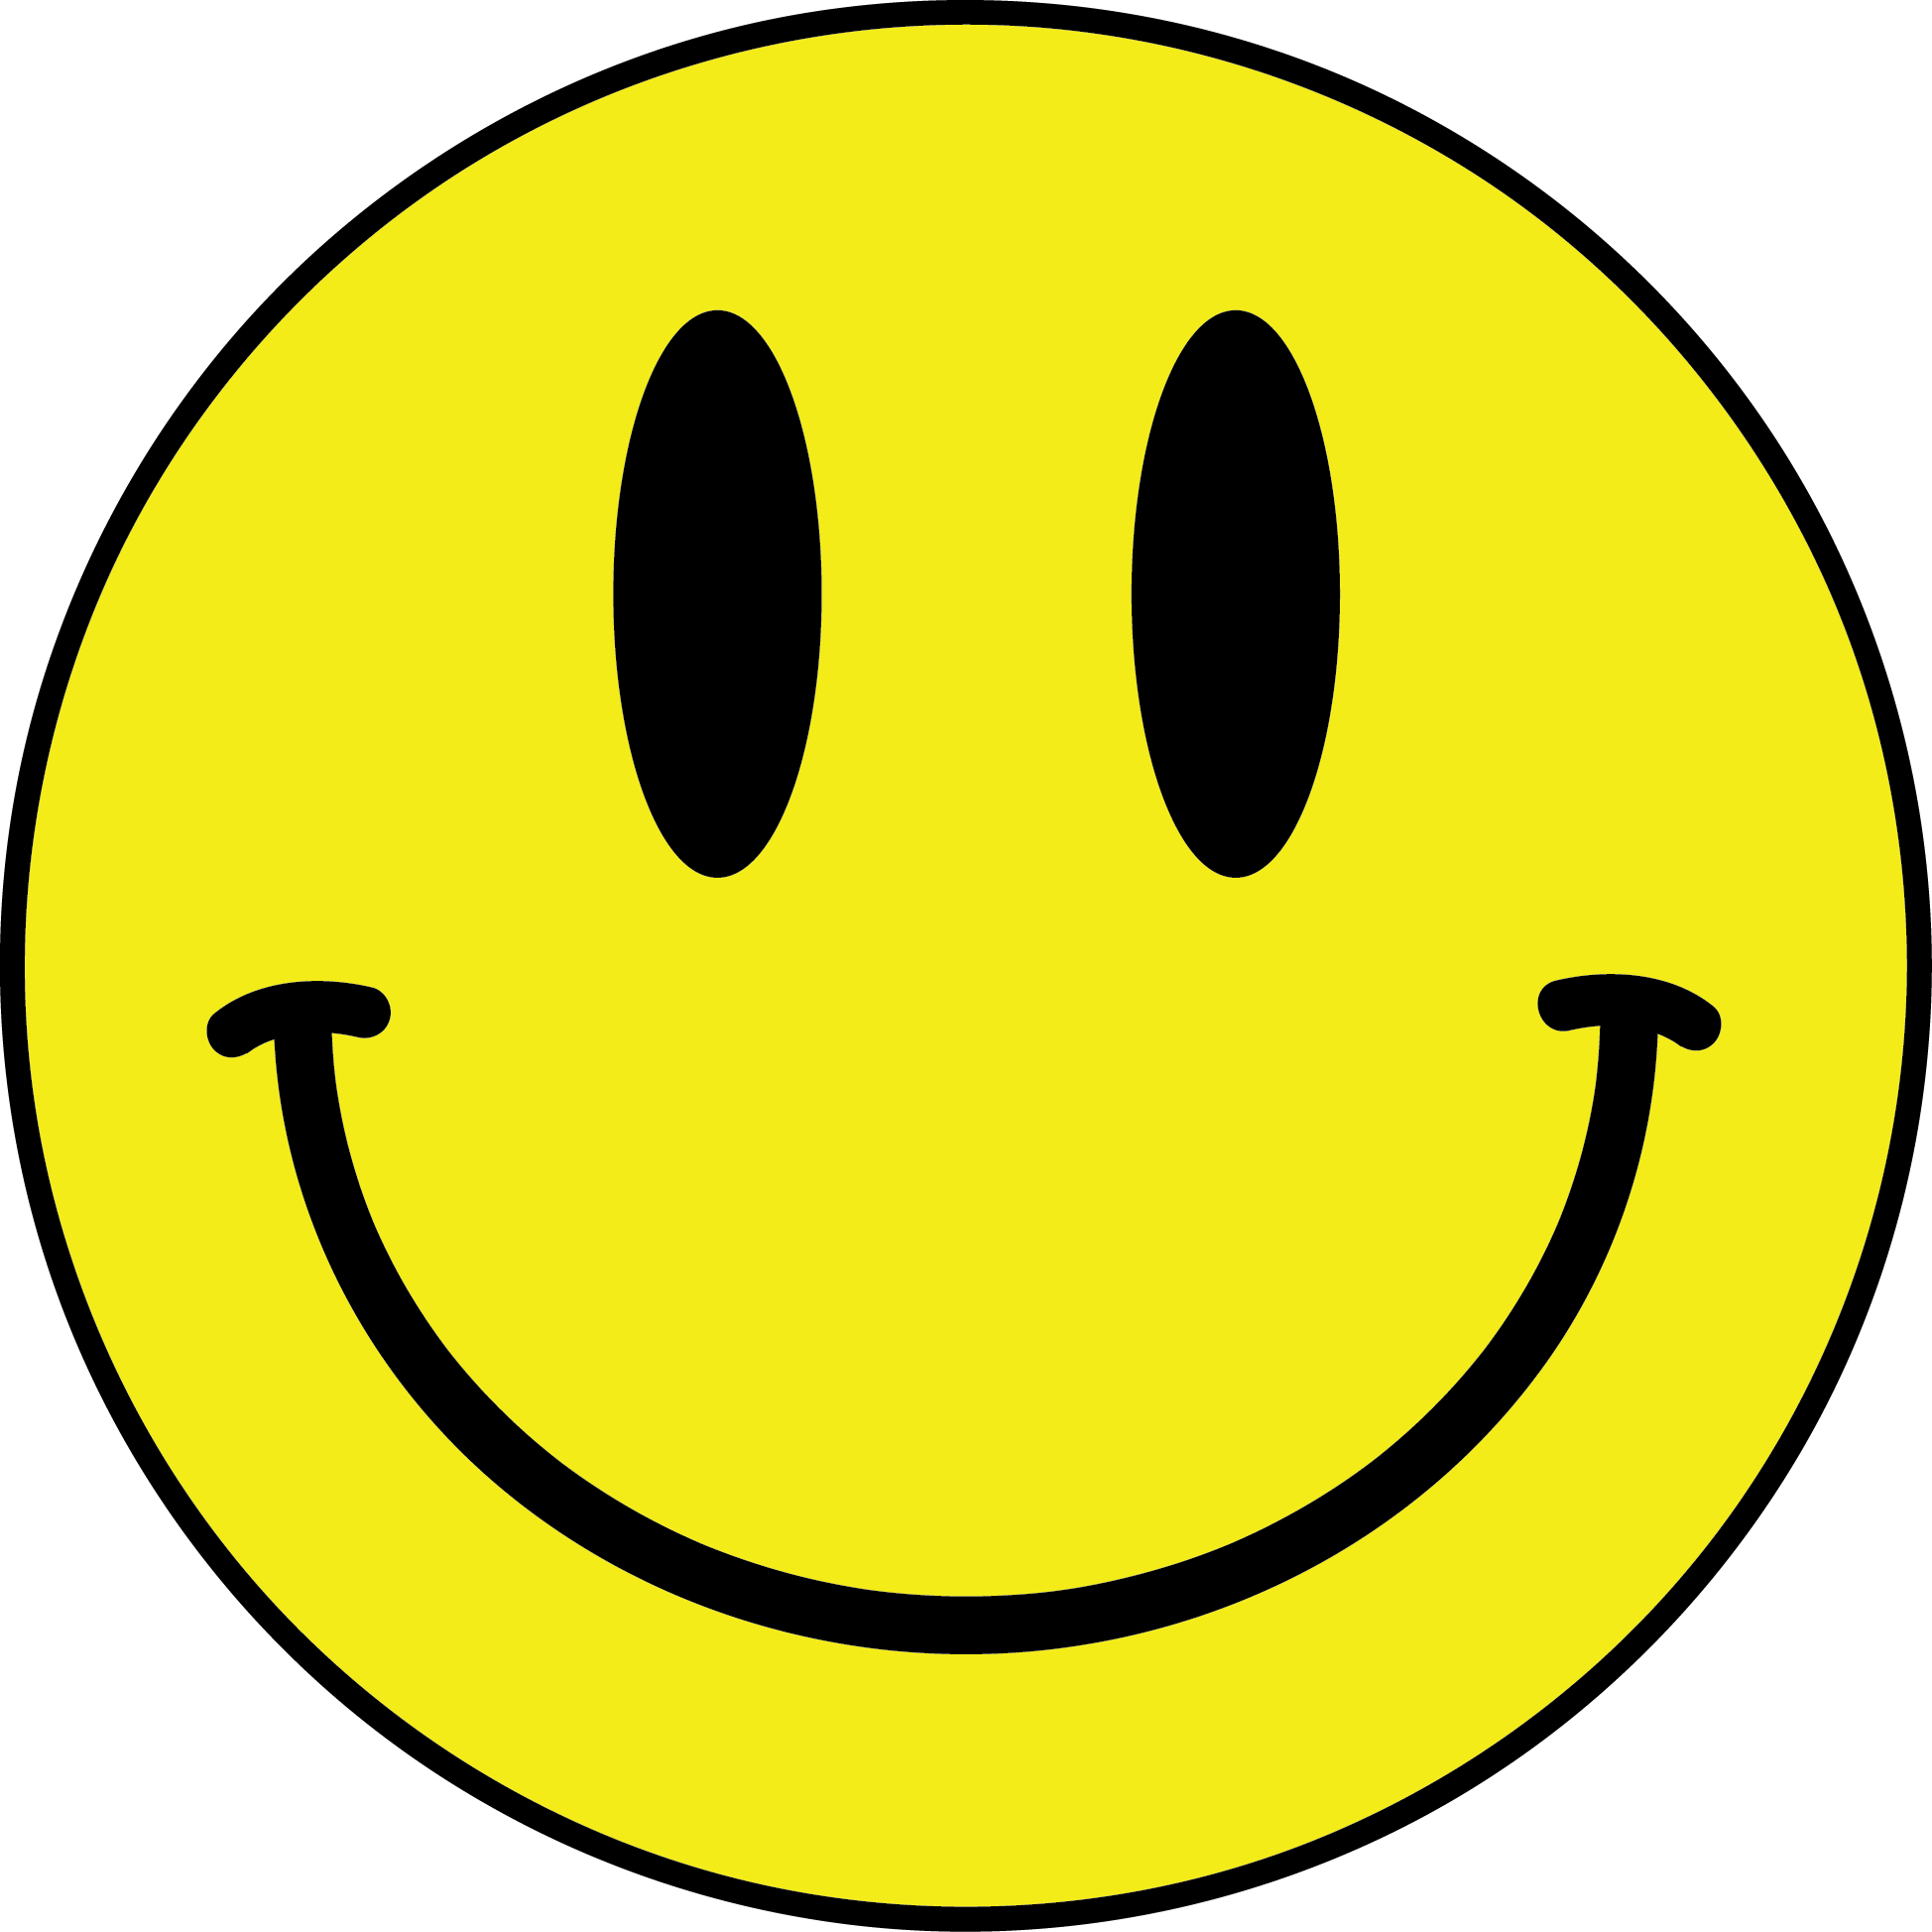 clip freeuse Acid clipartly comclipartly com. Smiley clipart.